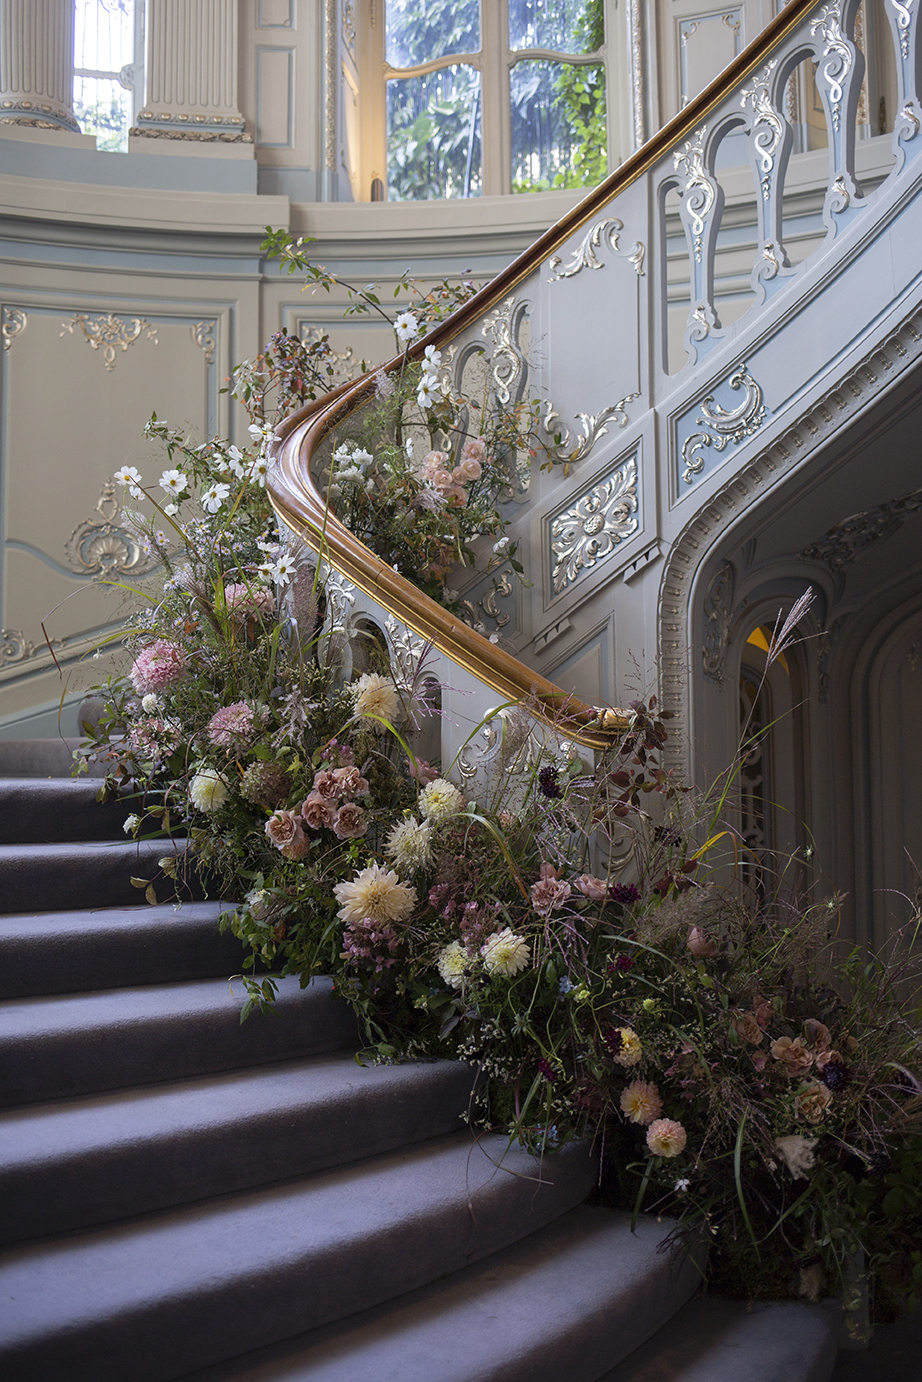 An autumnal floral staircase design at The Savile Club in Mayfair London by Aesme Flower Studio